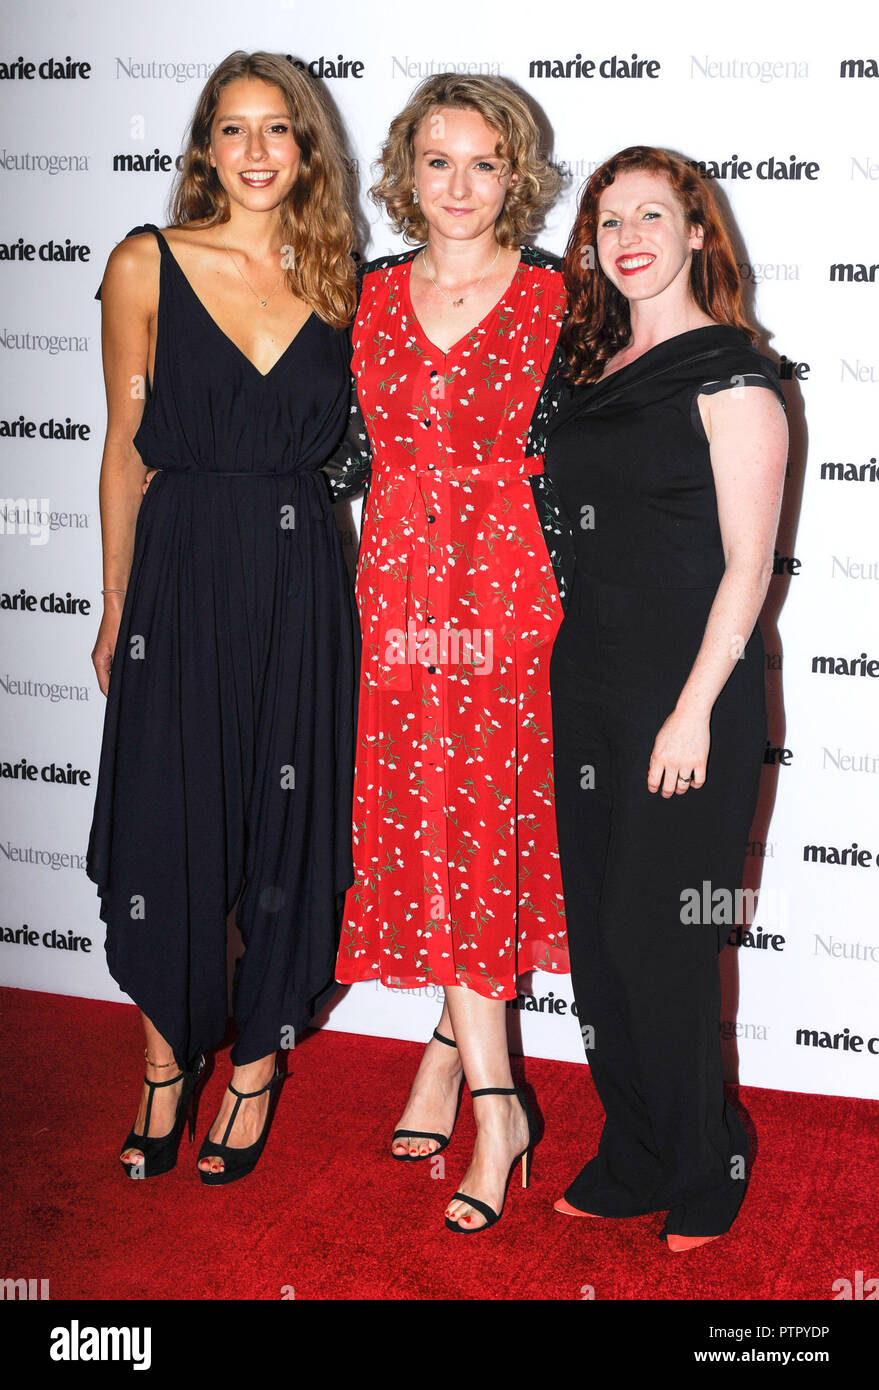 Photo Must Be Credited ©Alpha Press 080011 09/10/2018 Amandine Flachs, Catherine Allen and Verity McIntosh at the Marie Claire Future Shapers Awards 2018 held at Principal London in Russell Square, London. - Stock Image